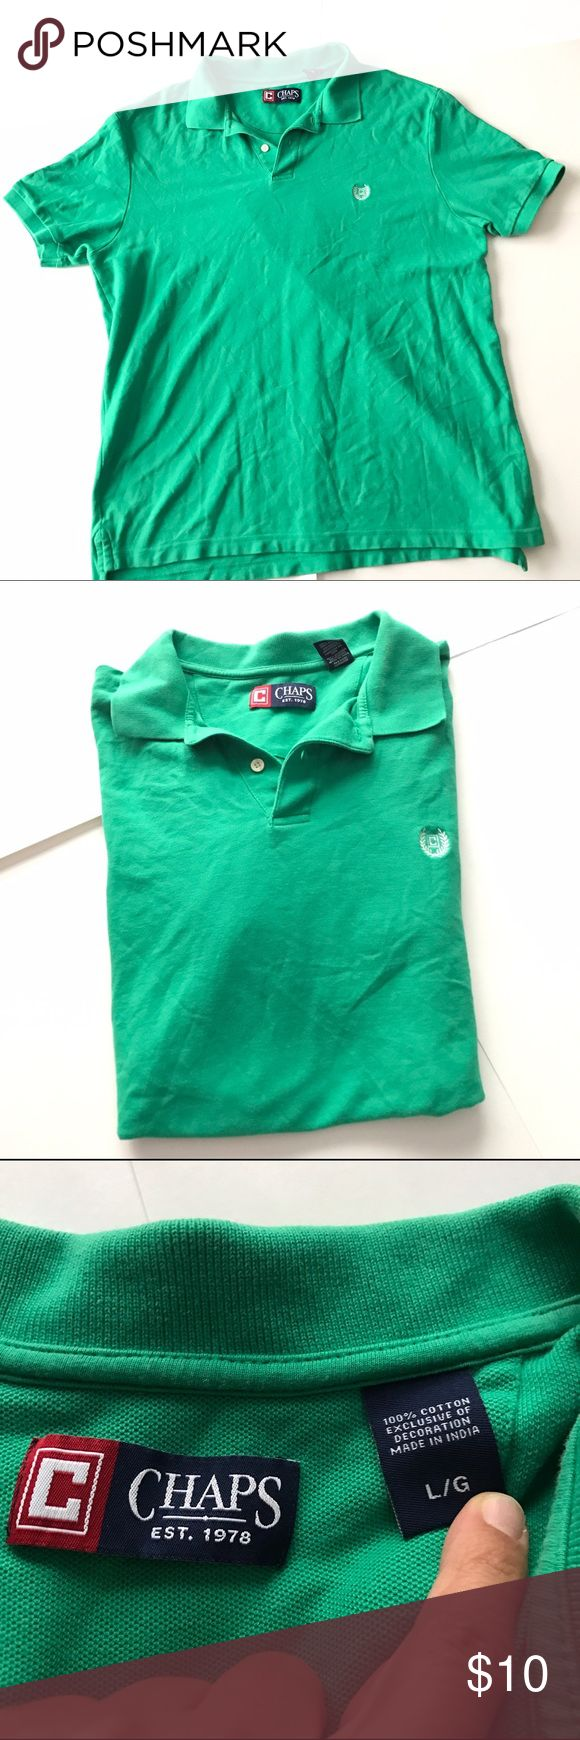 🦁Chaps Men's Green Polo Shirt Lrg Great condition Chaps Shirts Polos